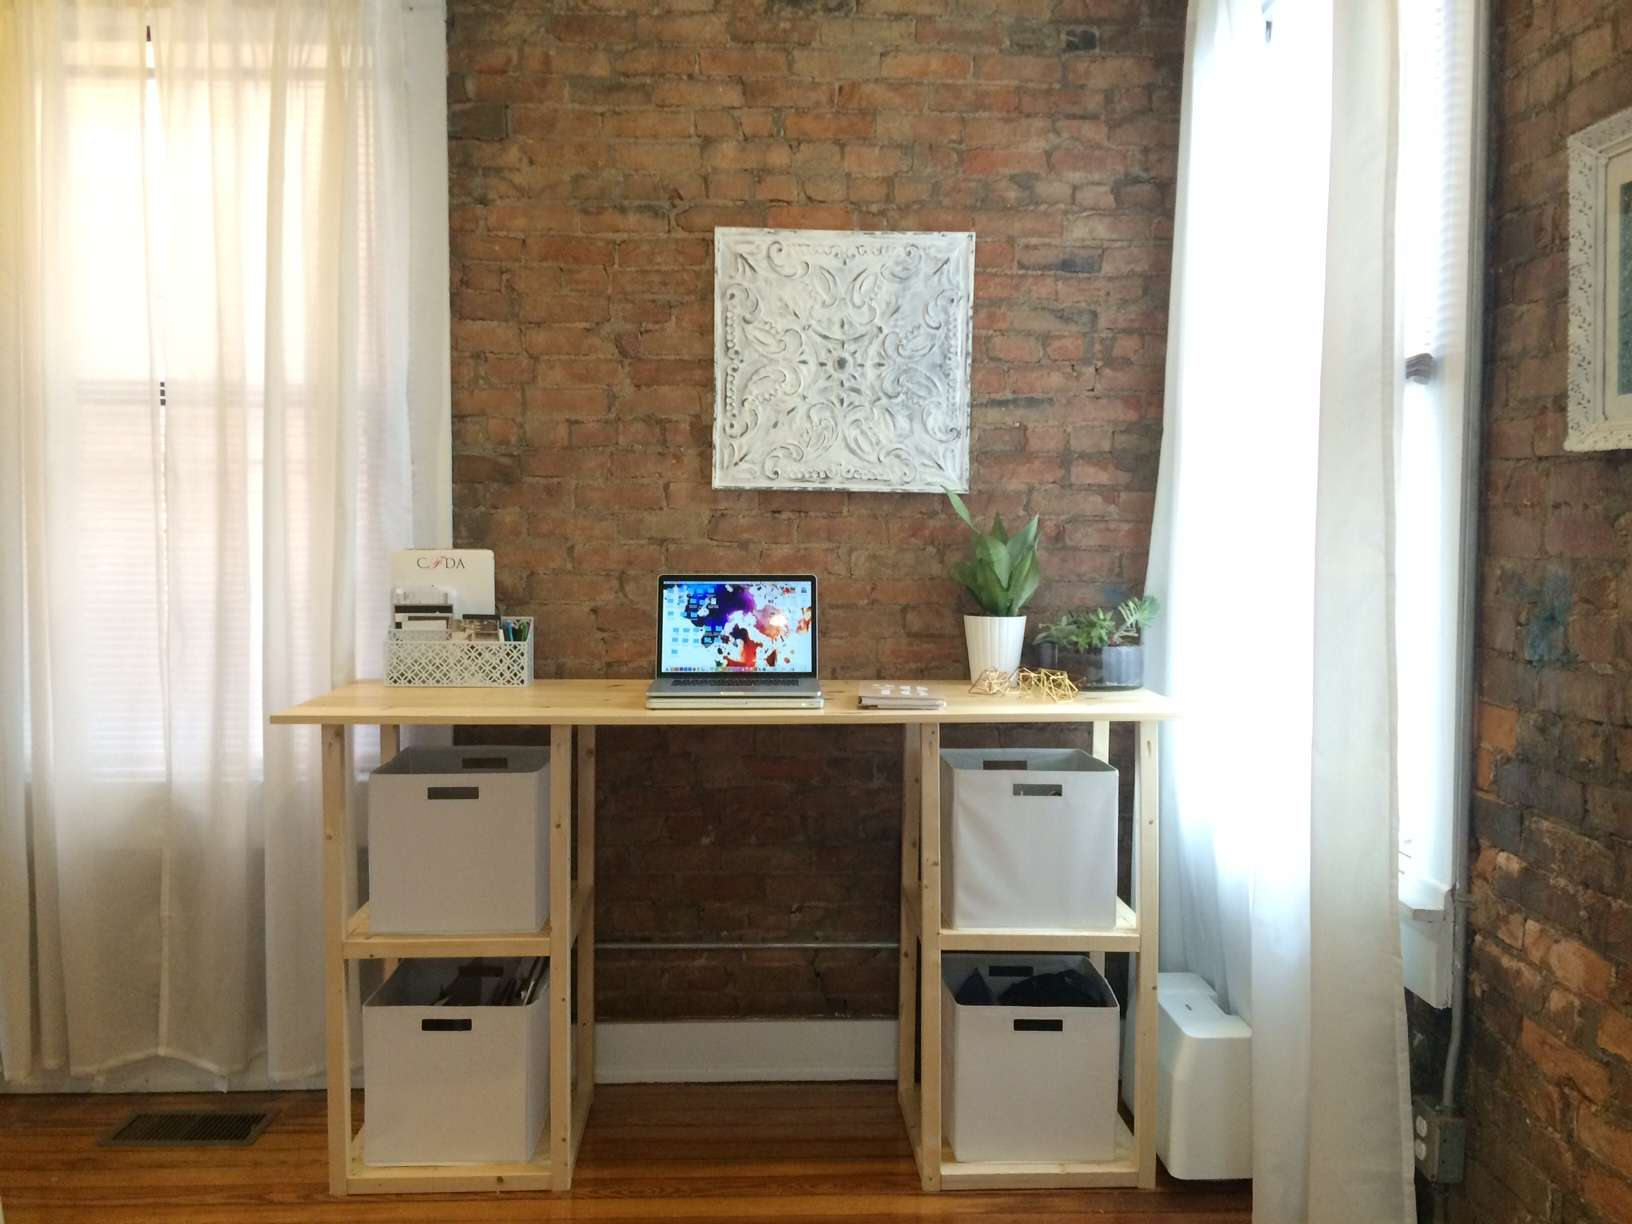 hight resolution of a diy desk by a brick wall and windows